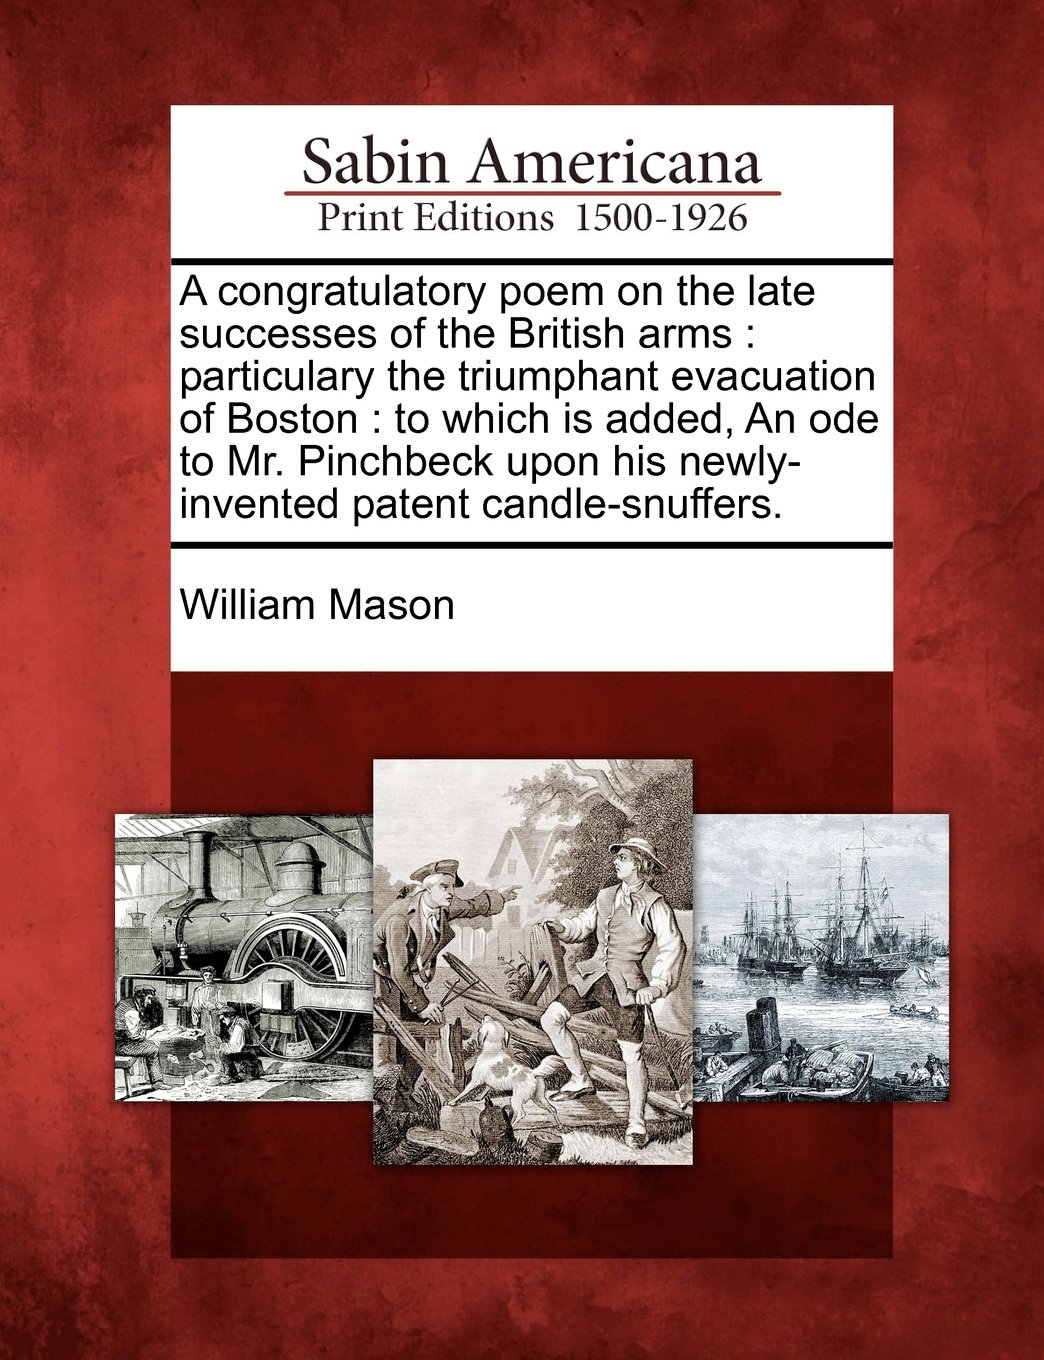 A congratulatory poem on the late successes of the British arms: particulary the triumphant evacuation of Boston : to which is added, An ode to Mr. ... his newly-invented patent candle-snuffers. PDF